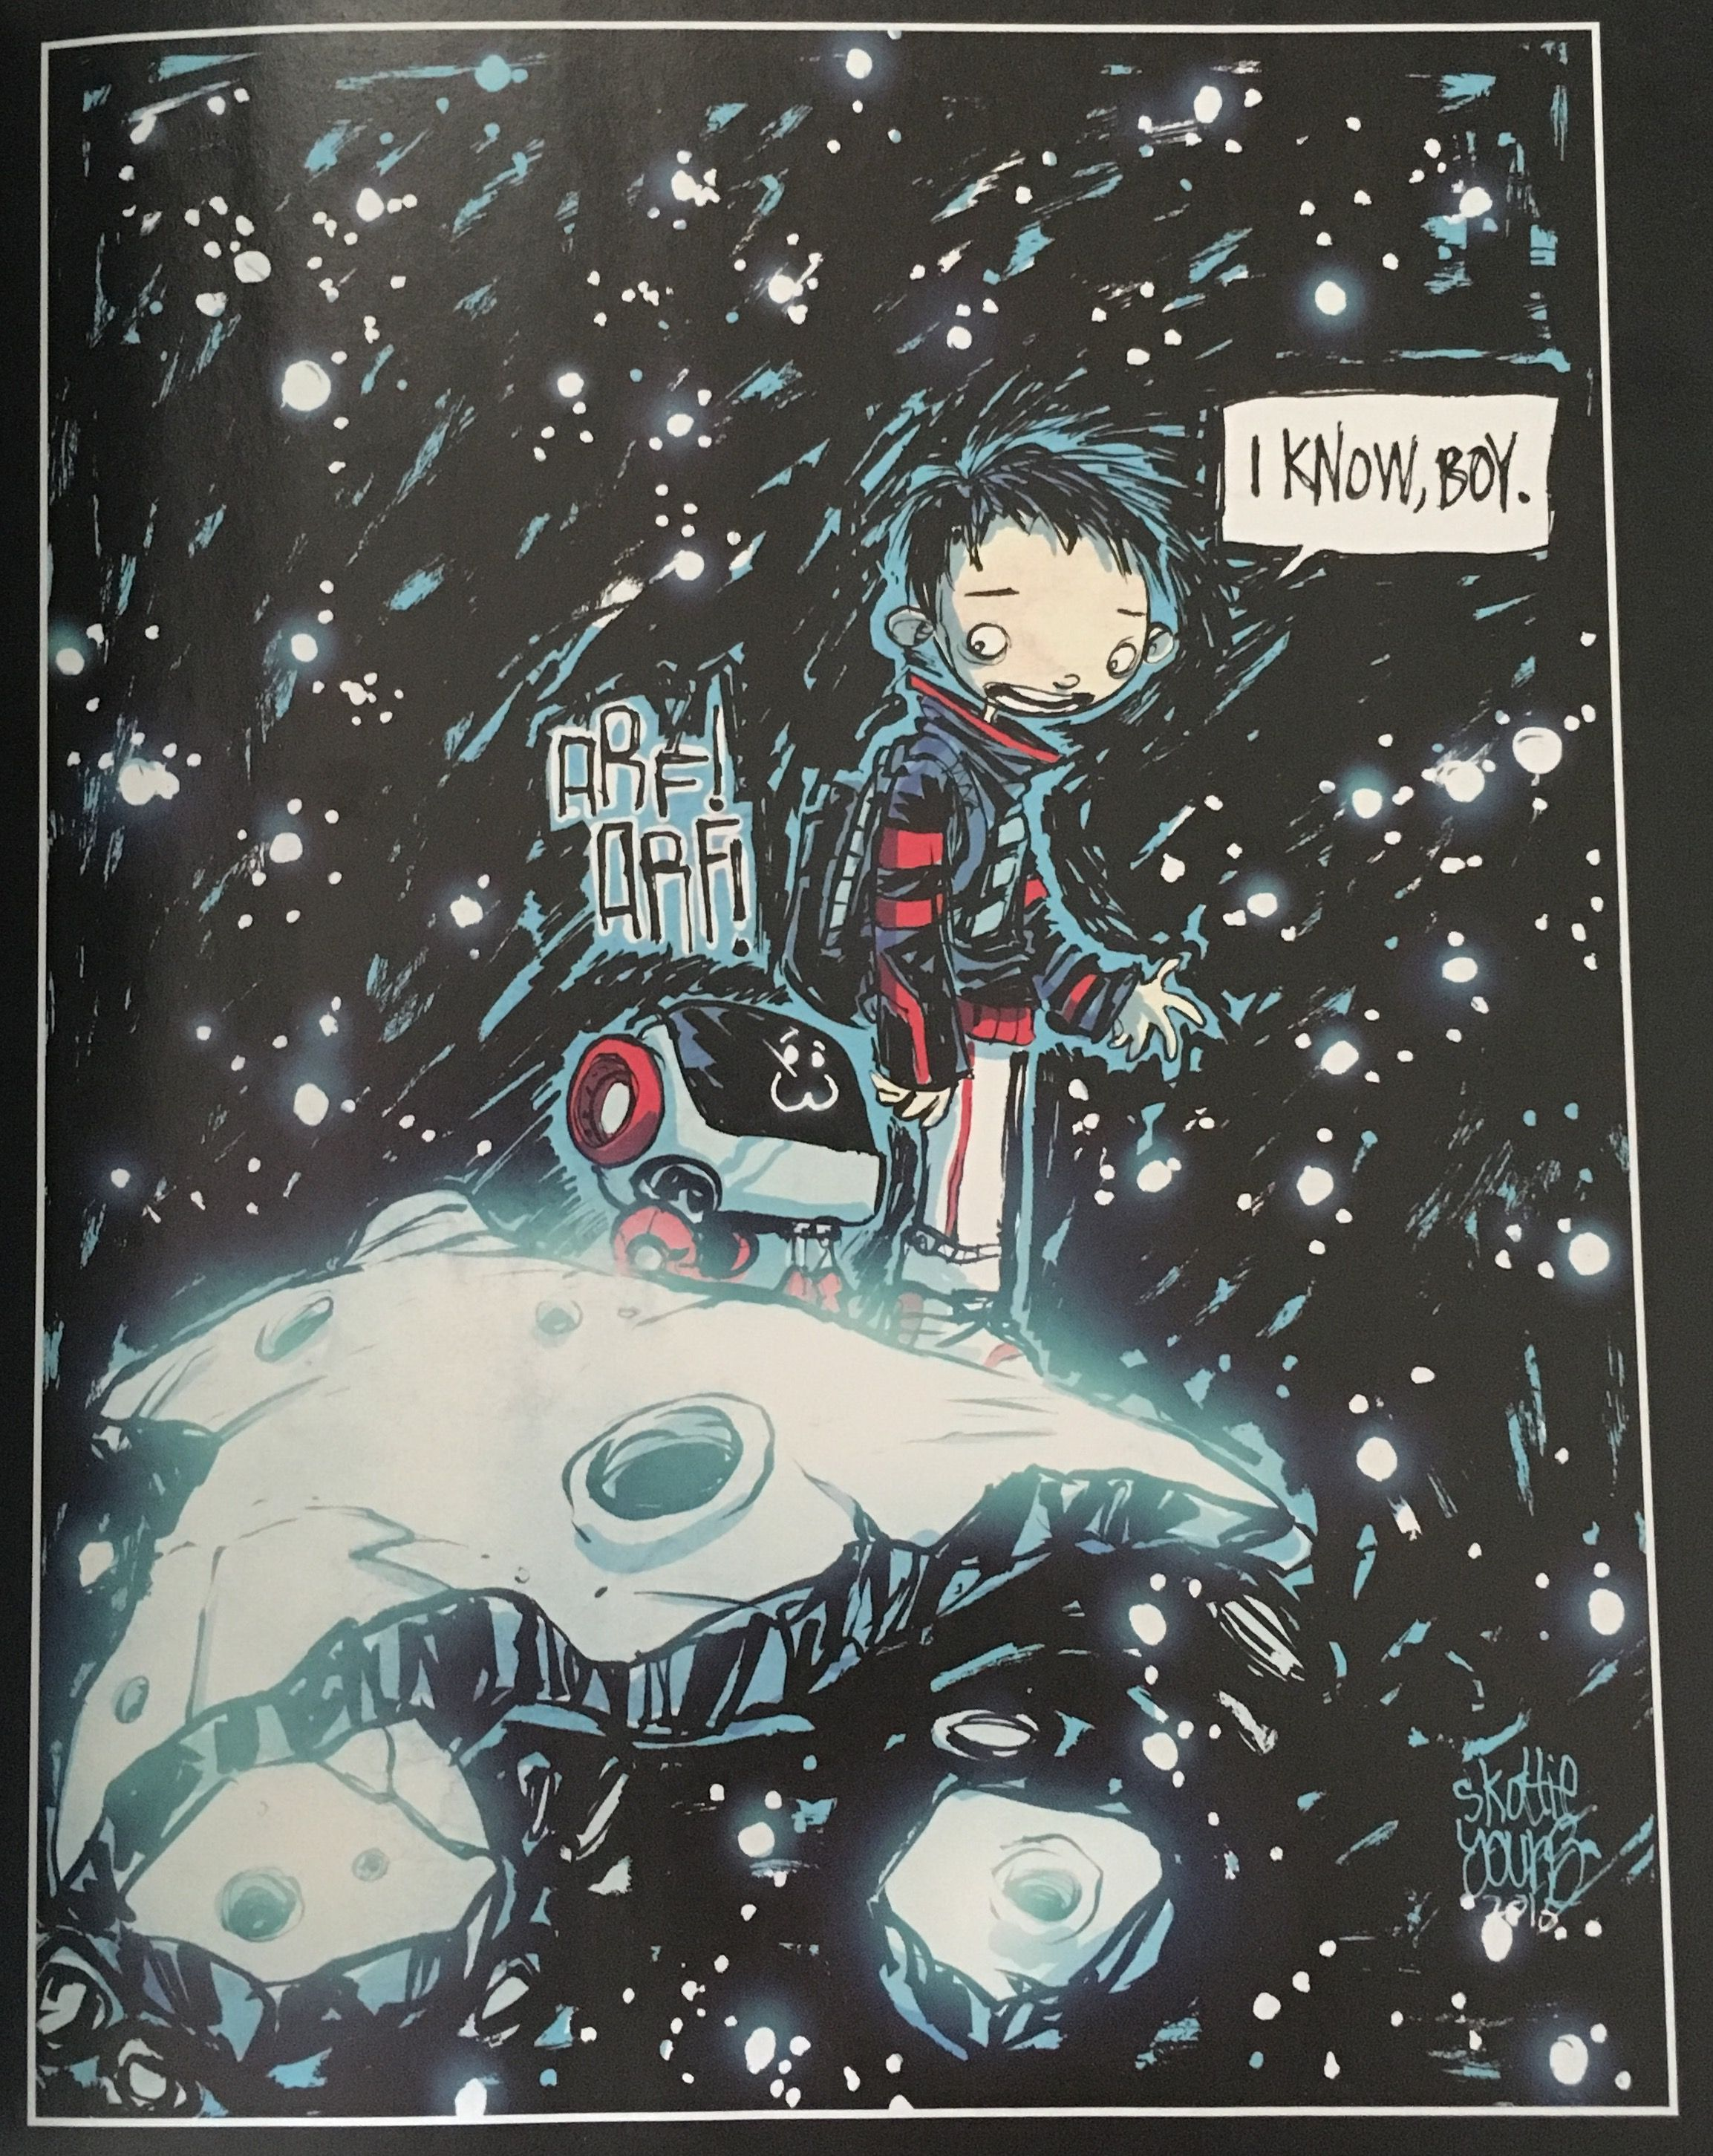 Drawing done by Skottie Young for the guys producing the Descender series by Image Comics. Located on the last page of Descender #10